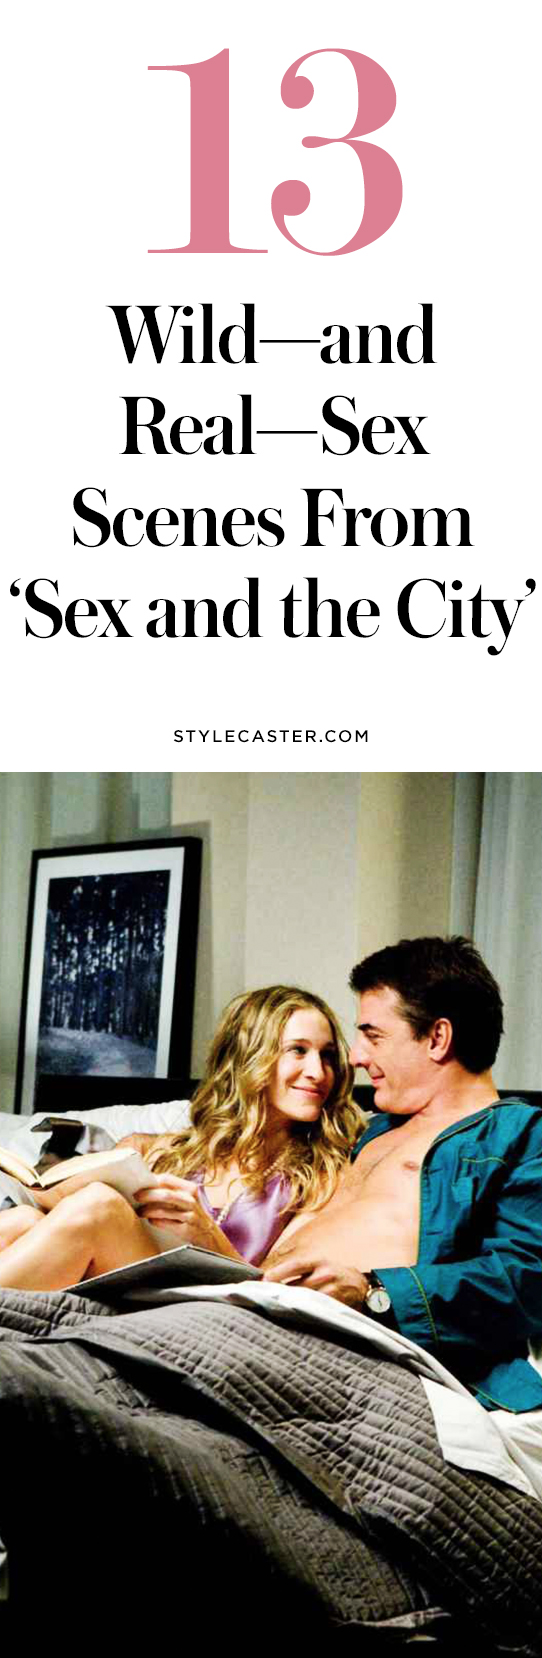 "Sex scenes from ""Sex and the City"" that are real 